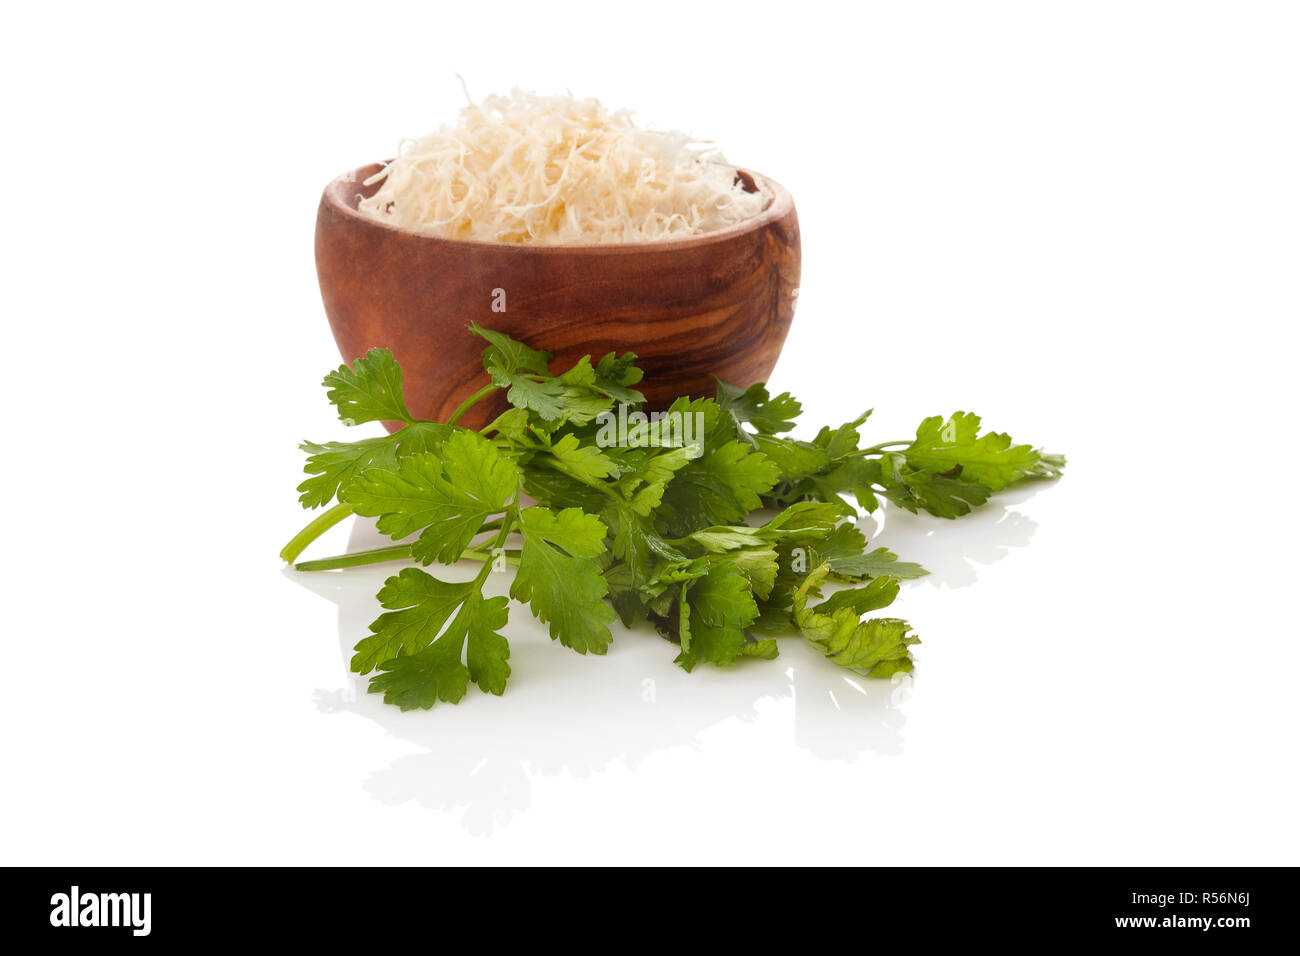 Grated horseradish with parsley. - Stock Image